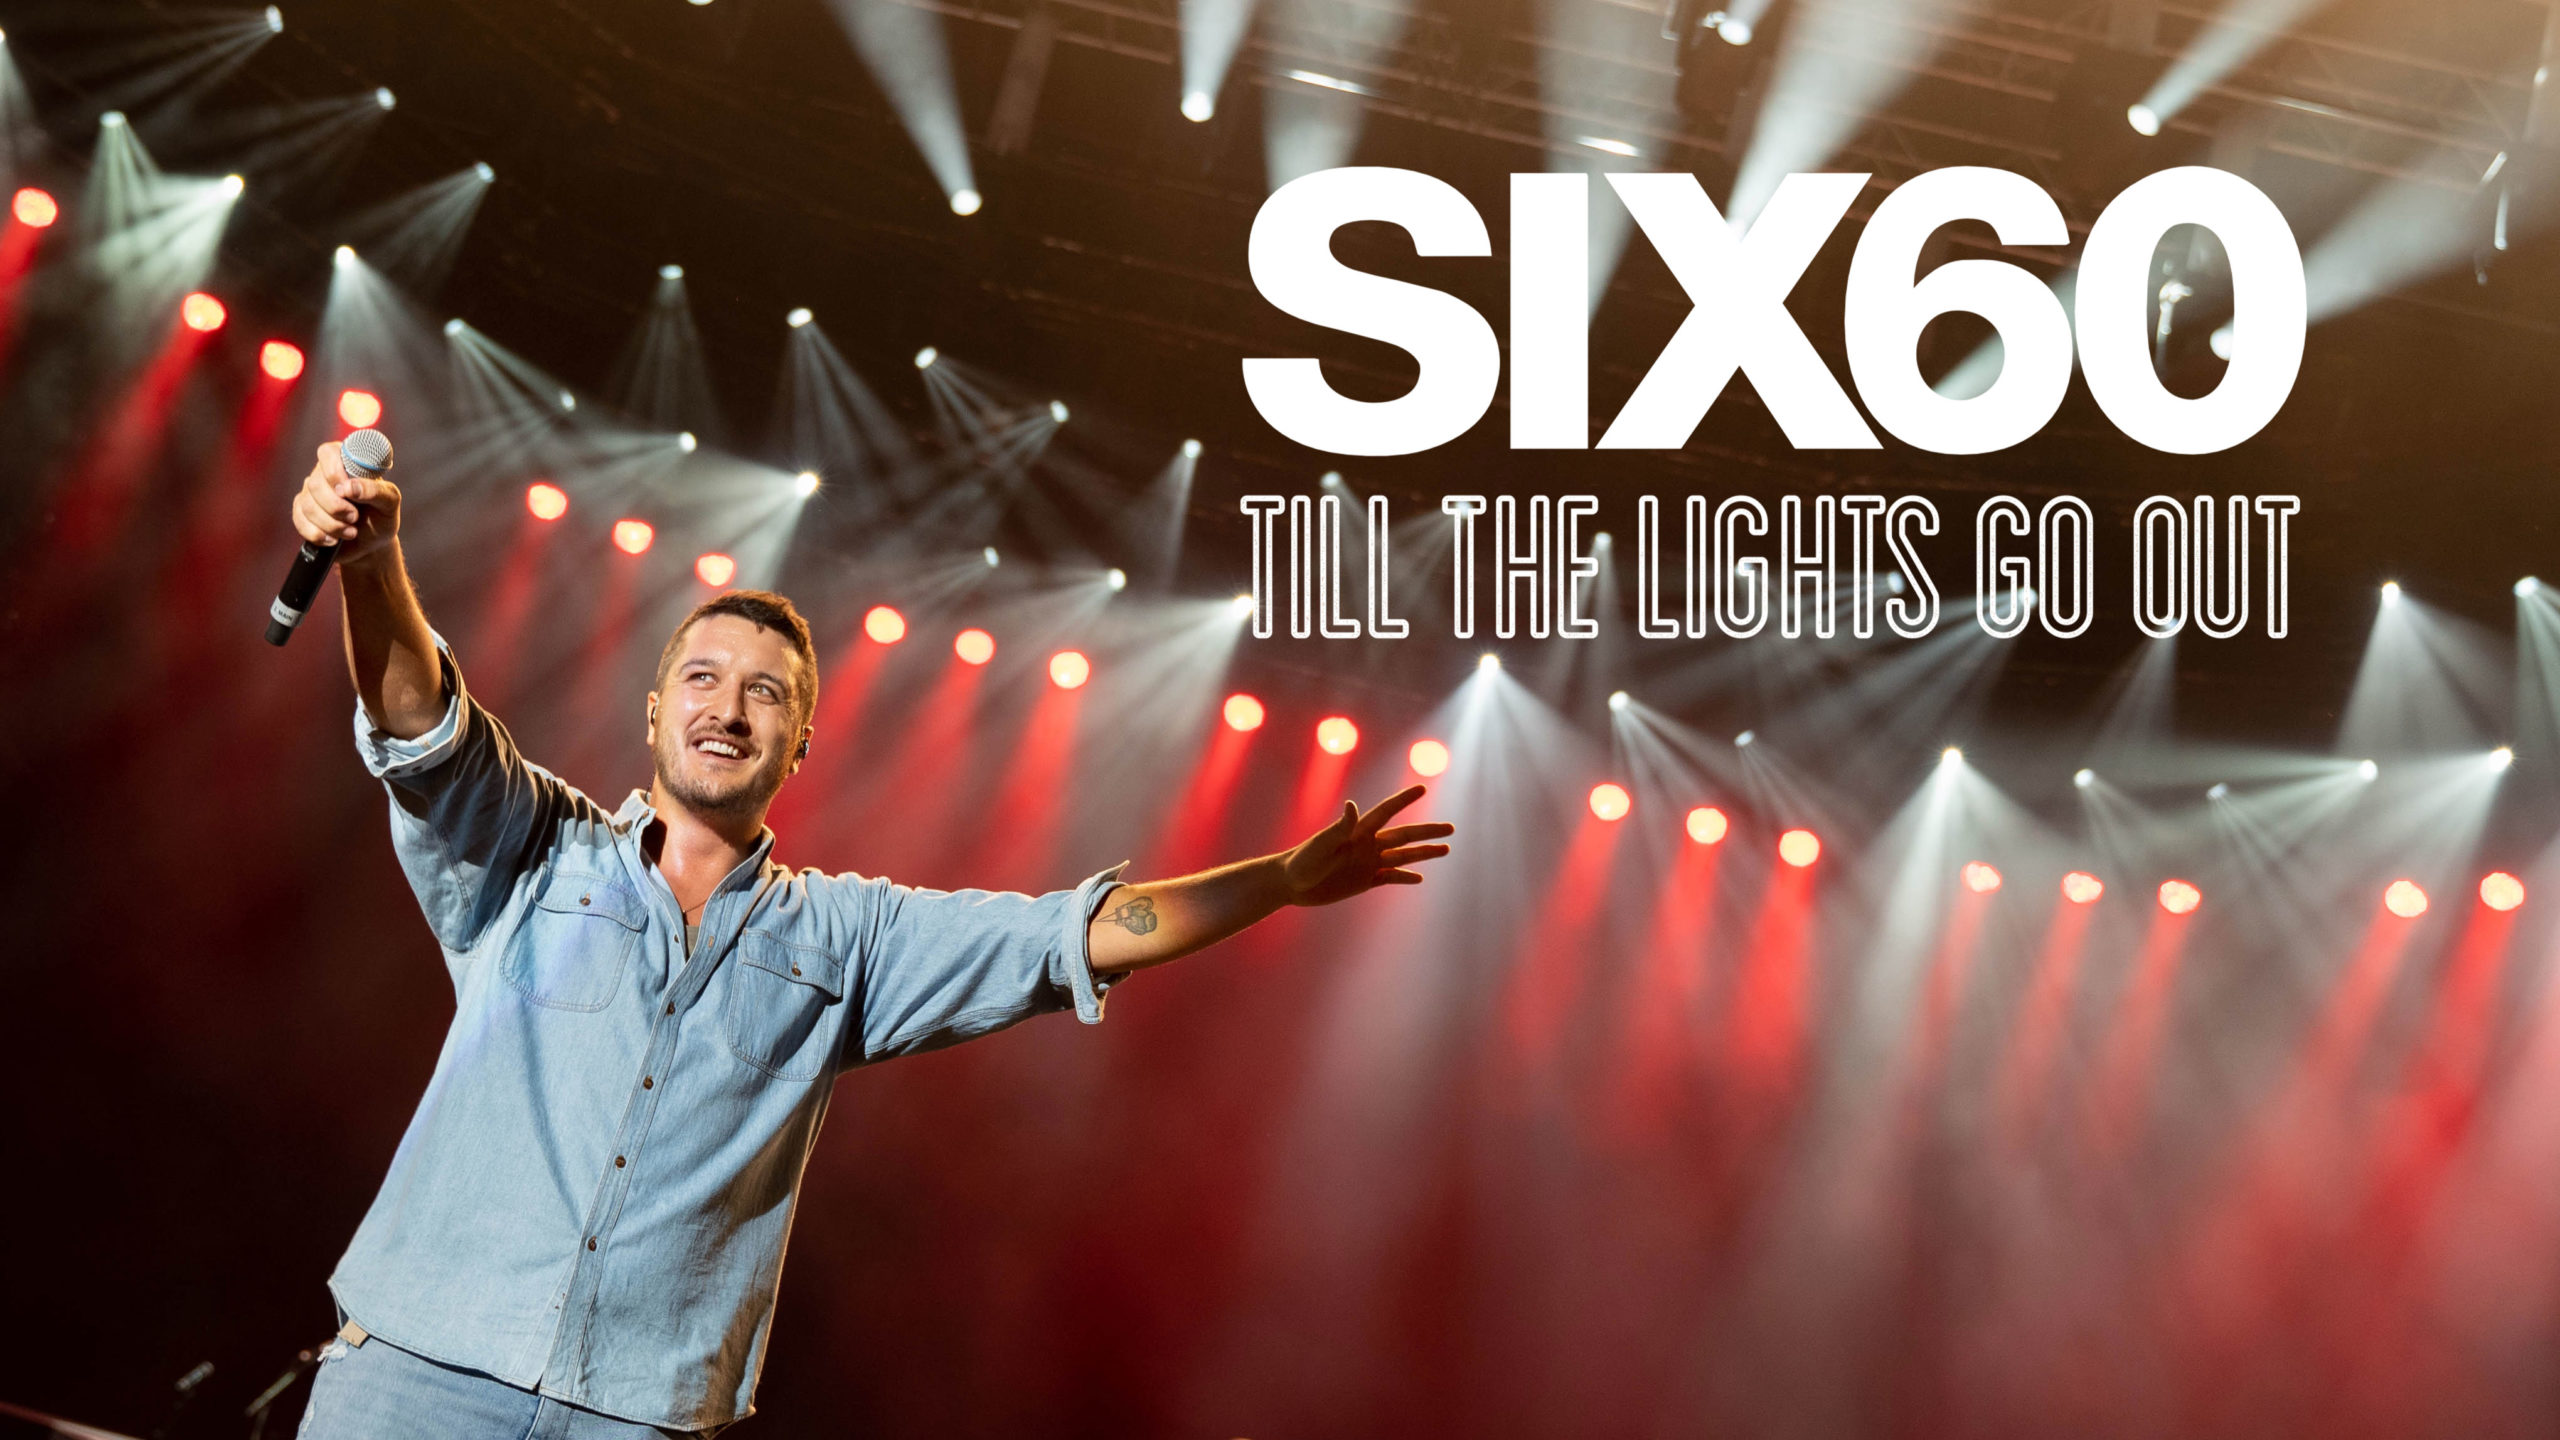 Julia Parnell on SIX60: Till The Lights Go Out